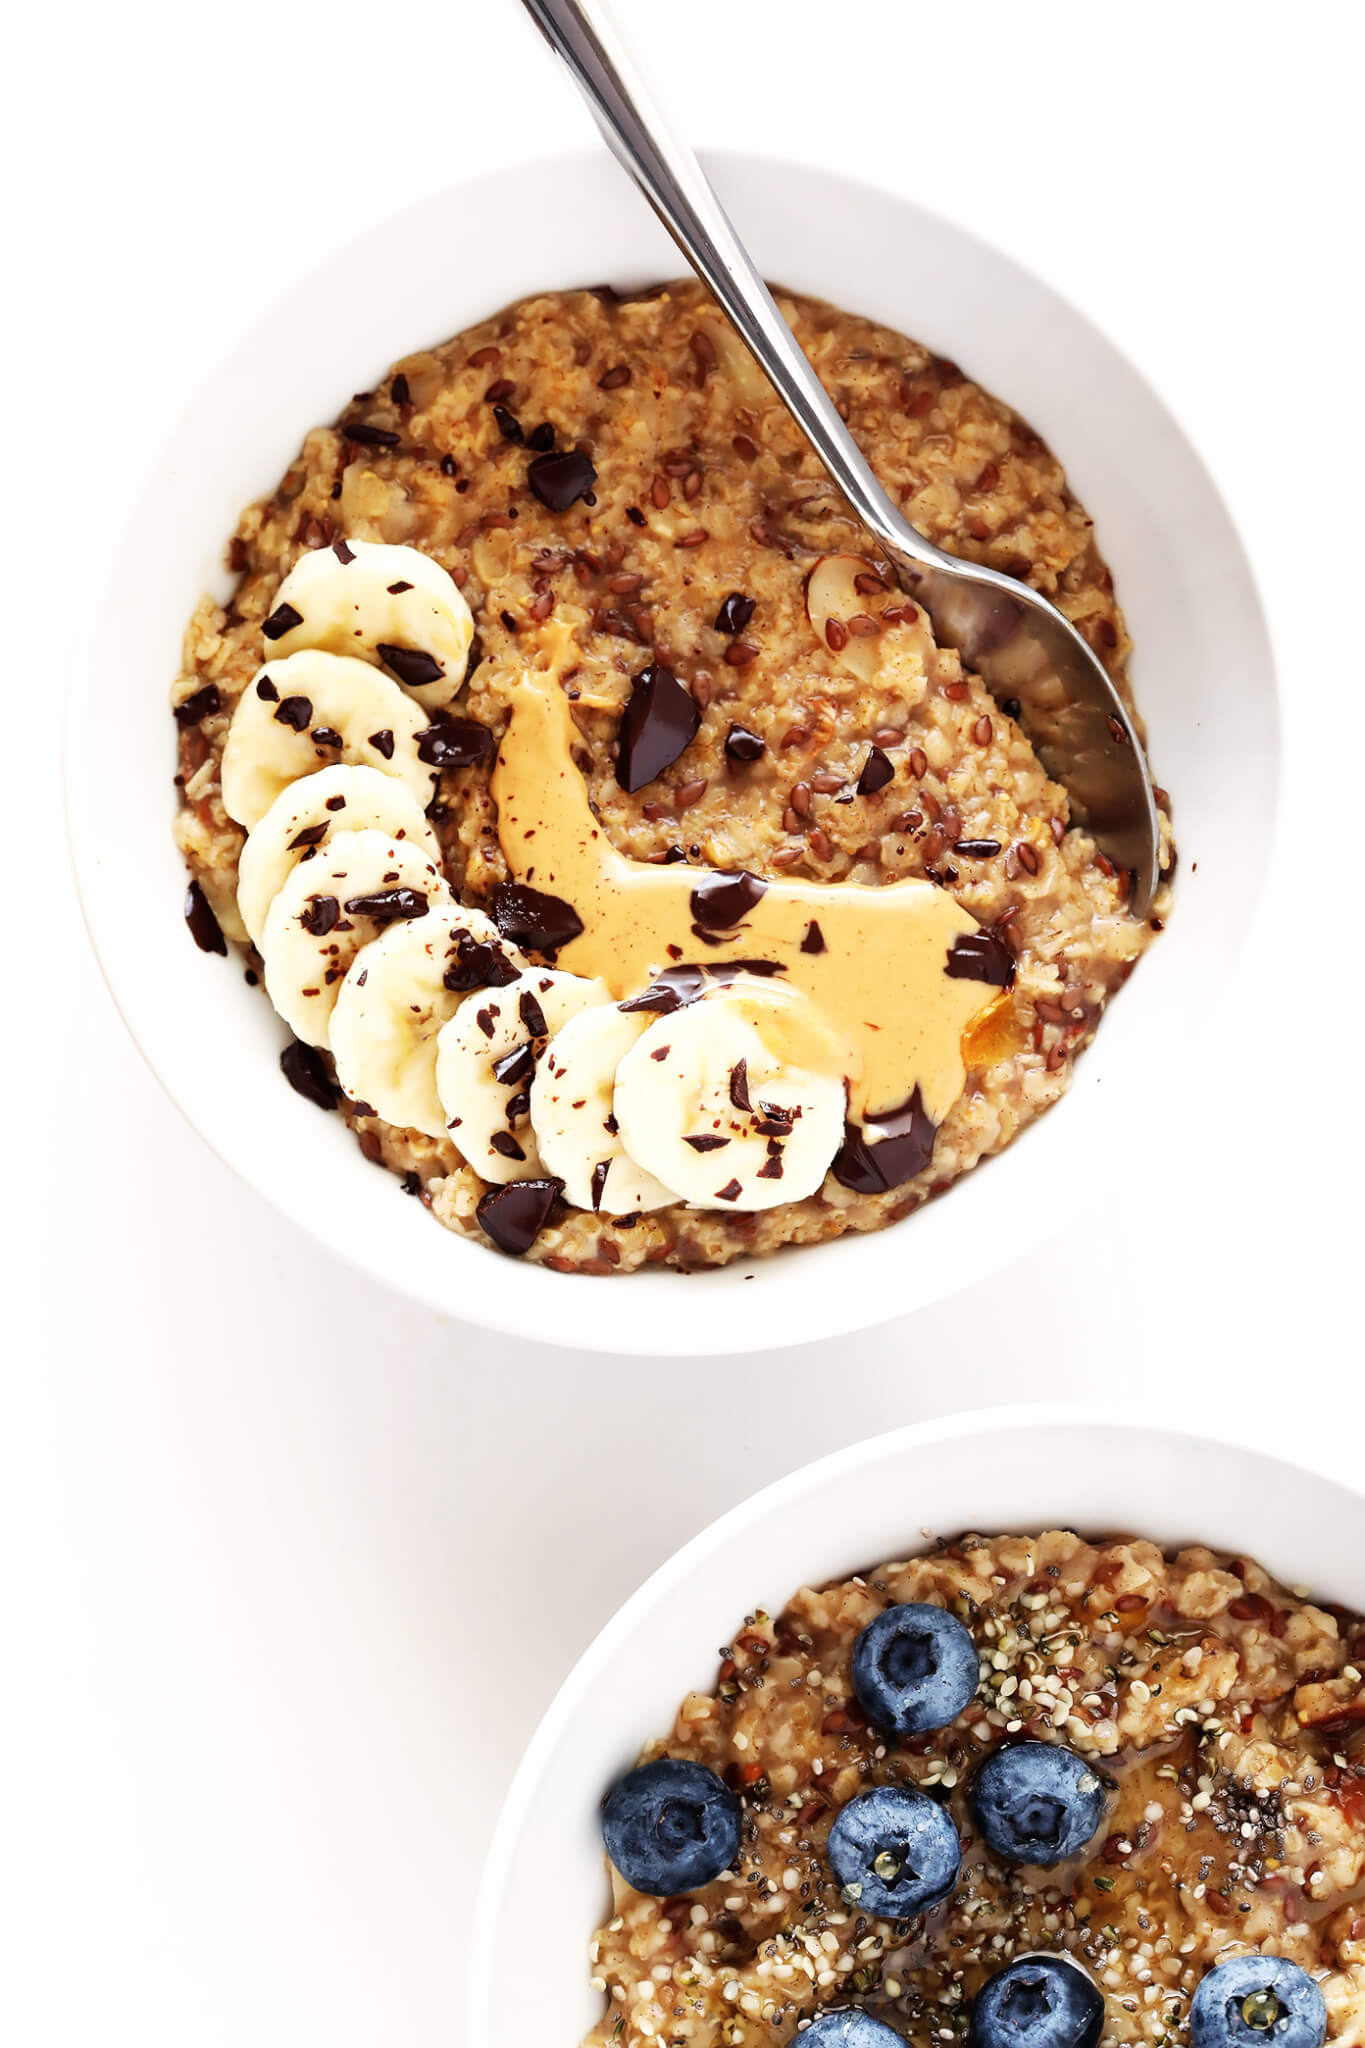 This DIY Instant Oatmeal Mix is super easy to make, and filled with healthier ingredients like nuts, dried fruit, flax, oats and cinnamon. Top yours with bananas, blueberries, peanut butter, chocolate, or whatever sounds good for breakfast! | gimmesomeoven.com